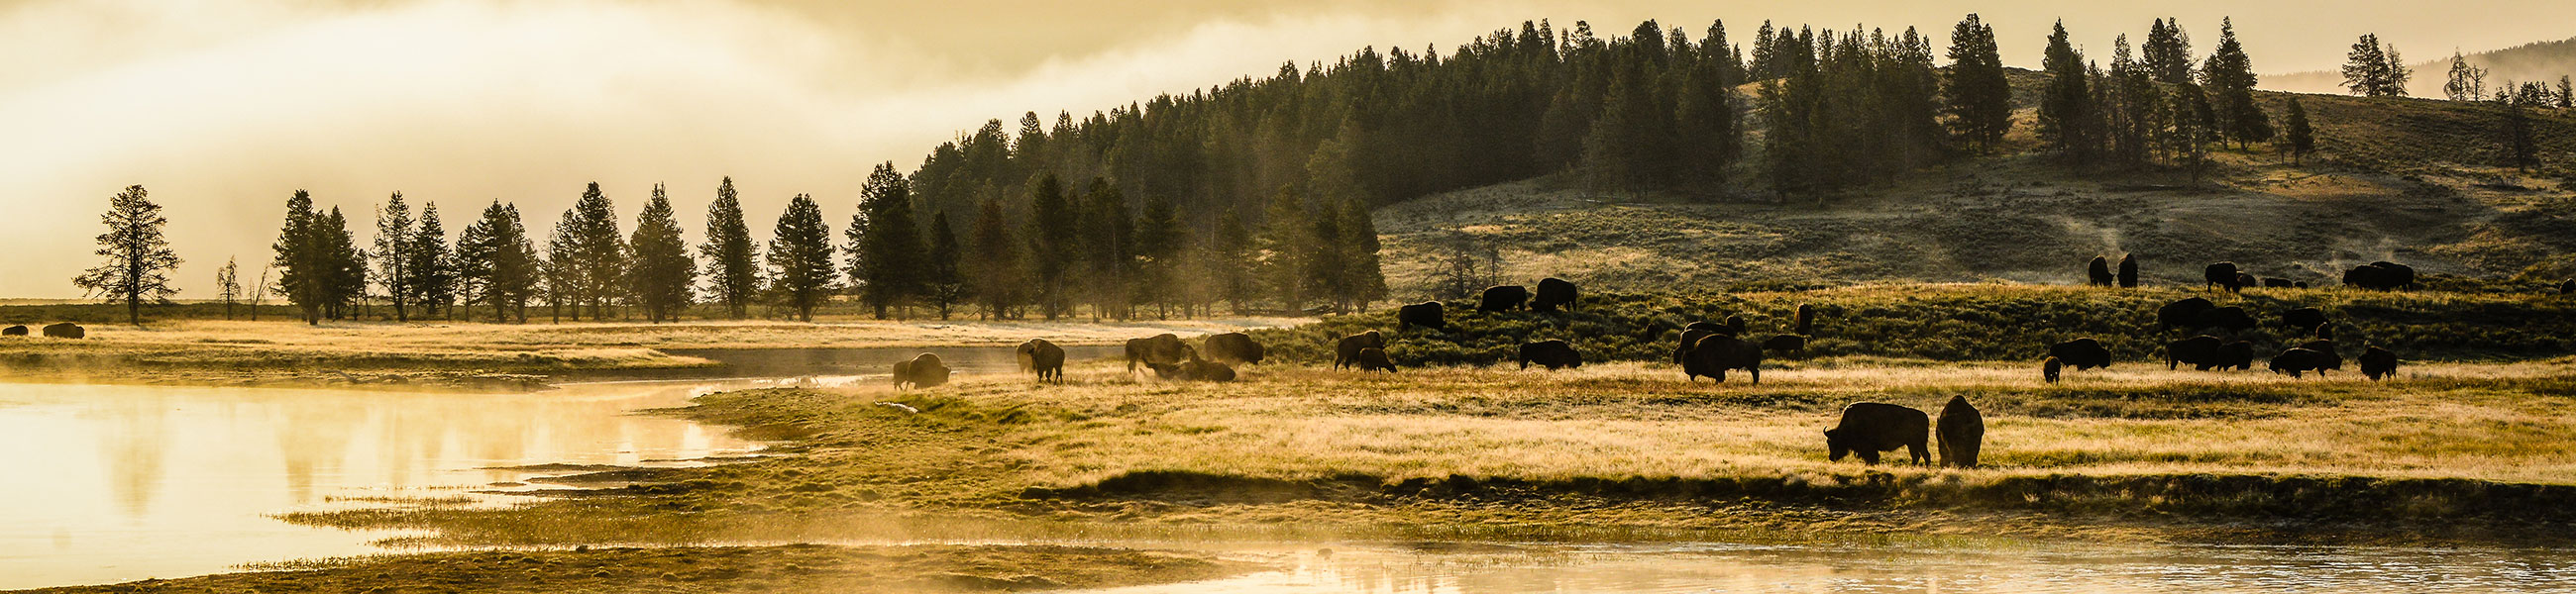 Bisons dans Yellowstone